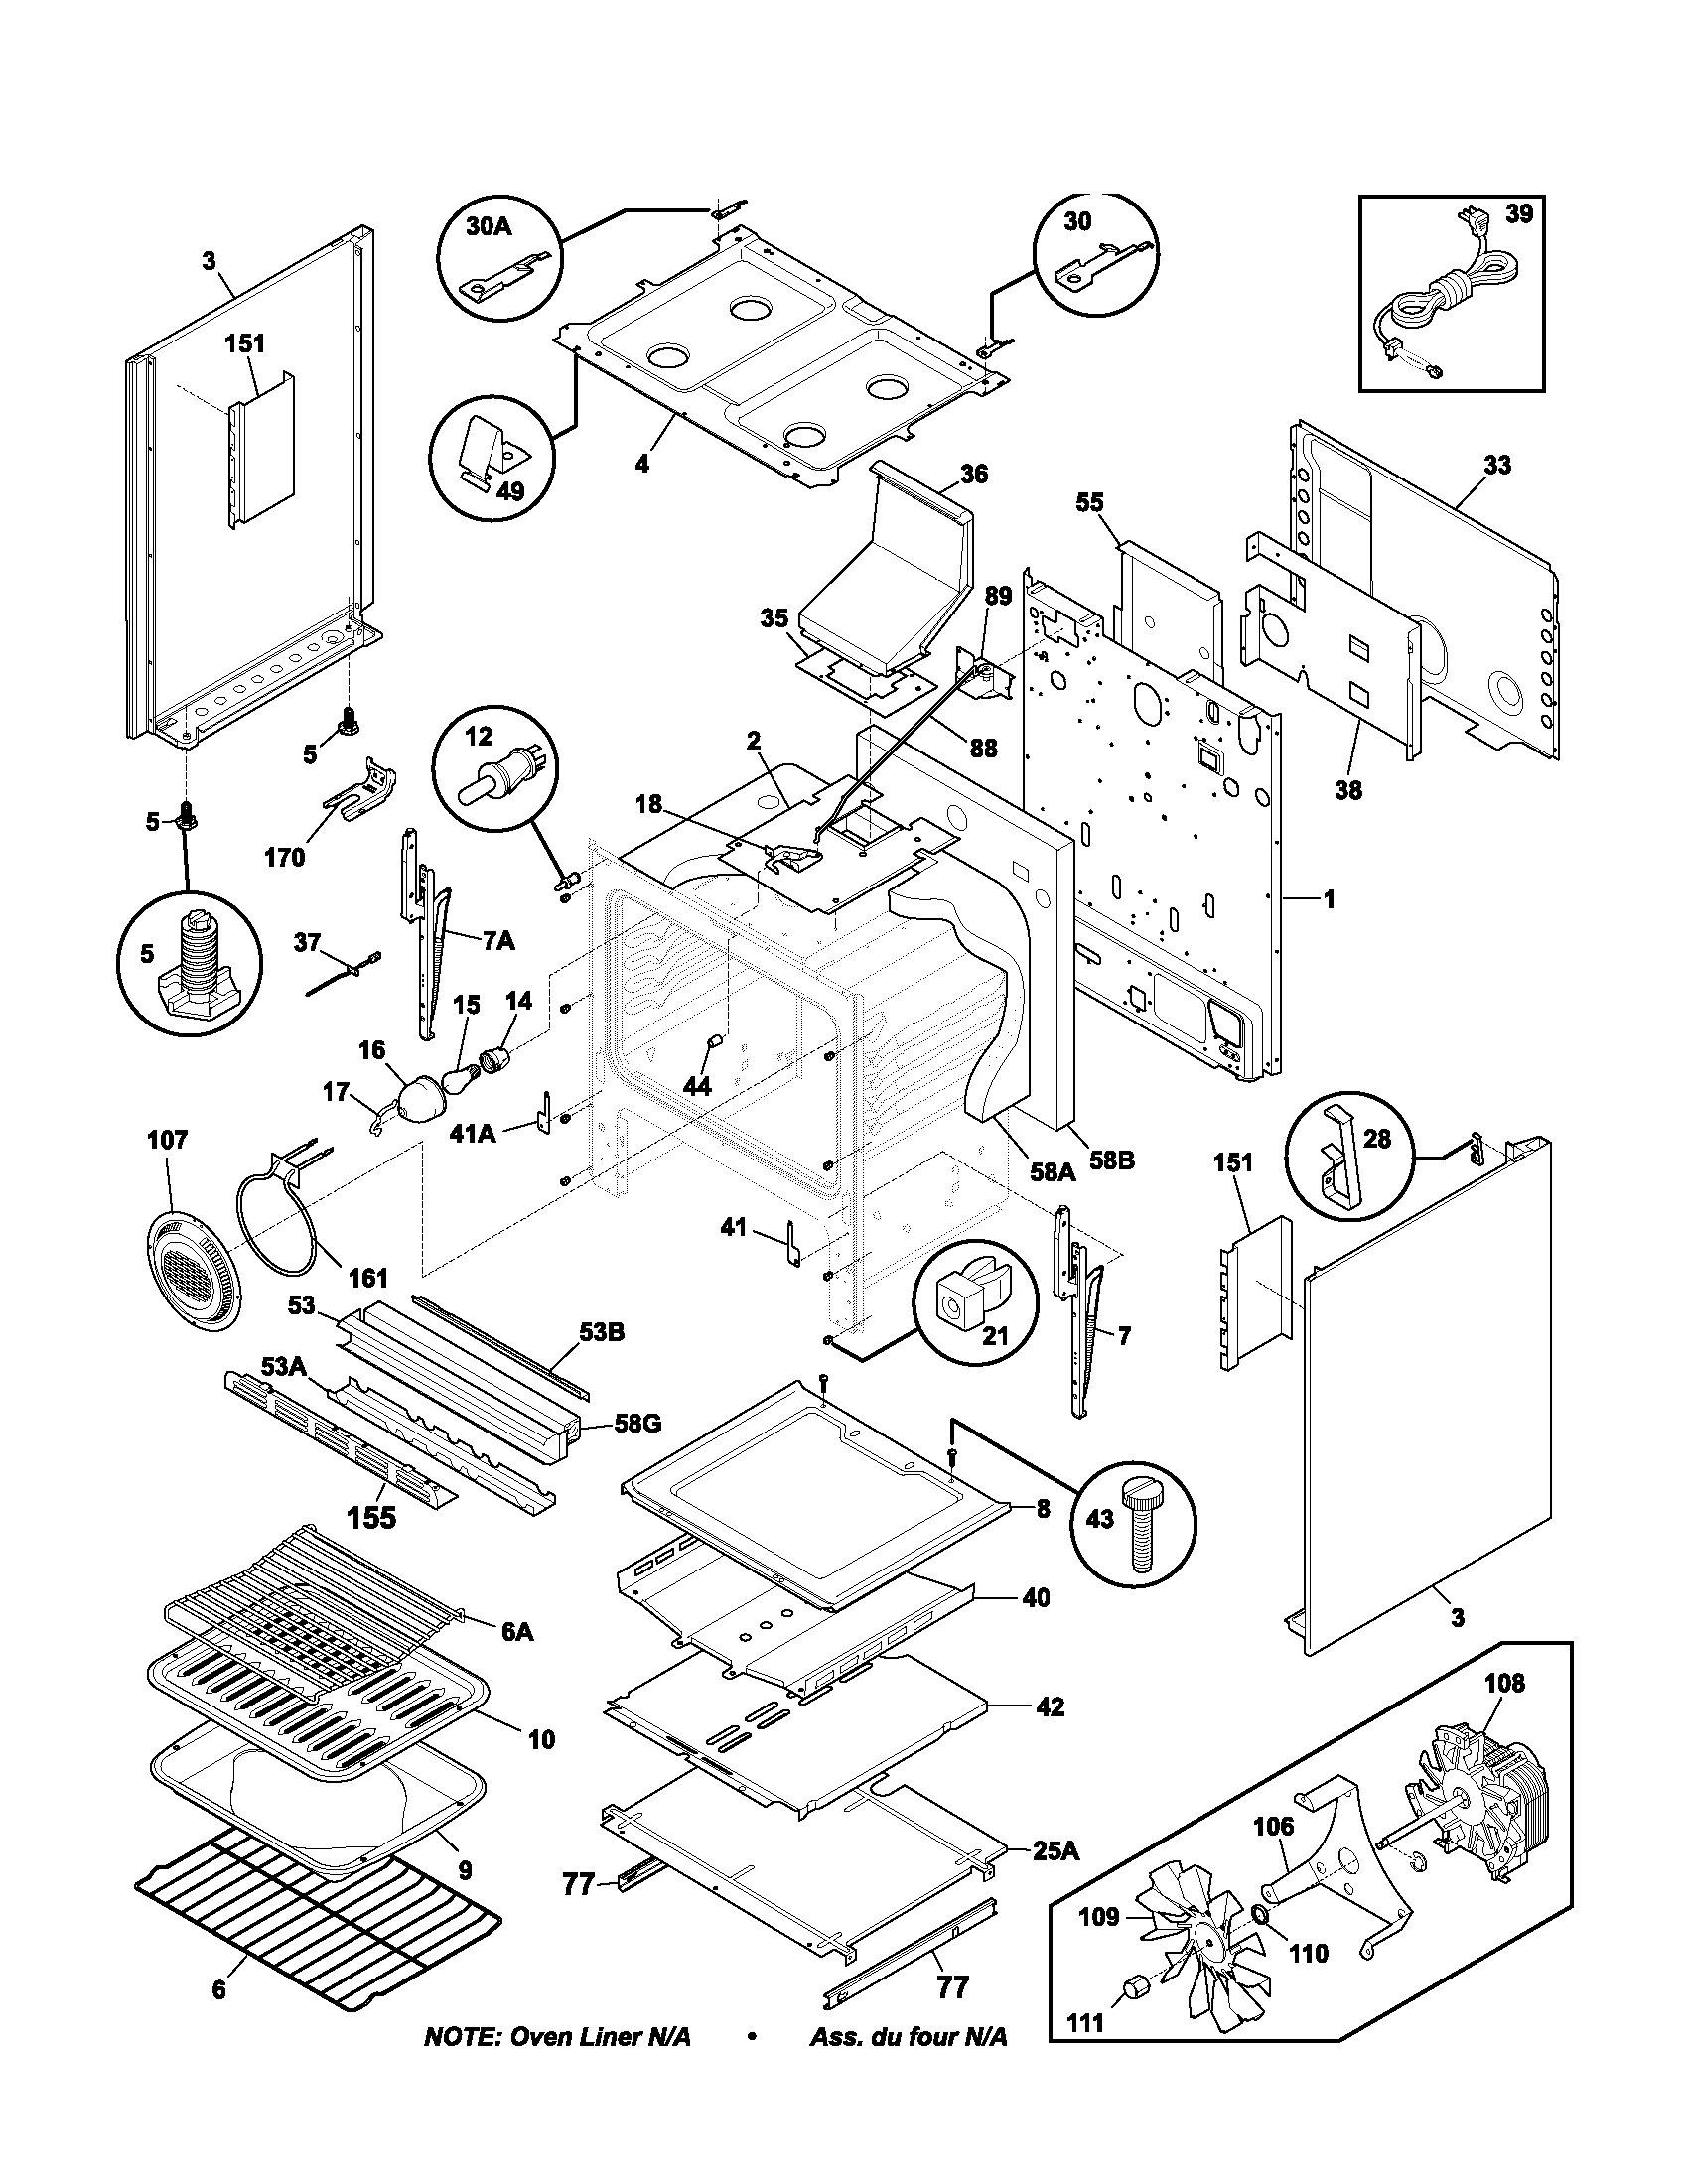 Frigidaire Gas Oven Parts Diagram Guide And Troubleshooting Of Whirlpool Cabrio Dryer Images Frompo Plgf389ccb Range Timer Stove Clocks Appliance Rh Appliancetimers Com Gaskets Replacement